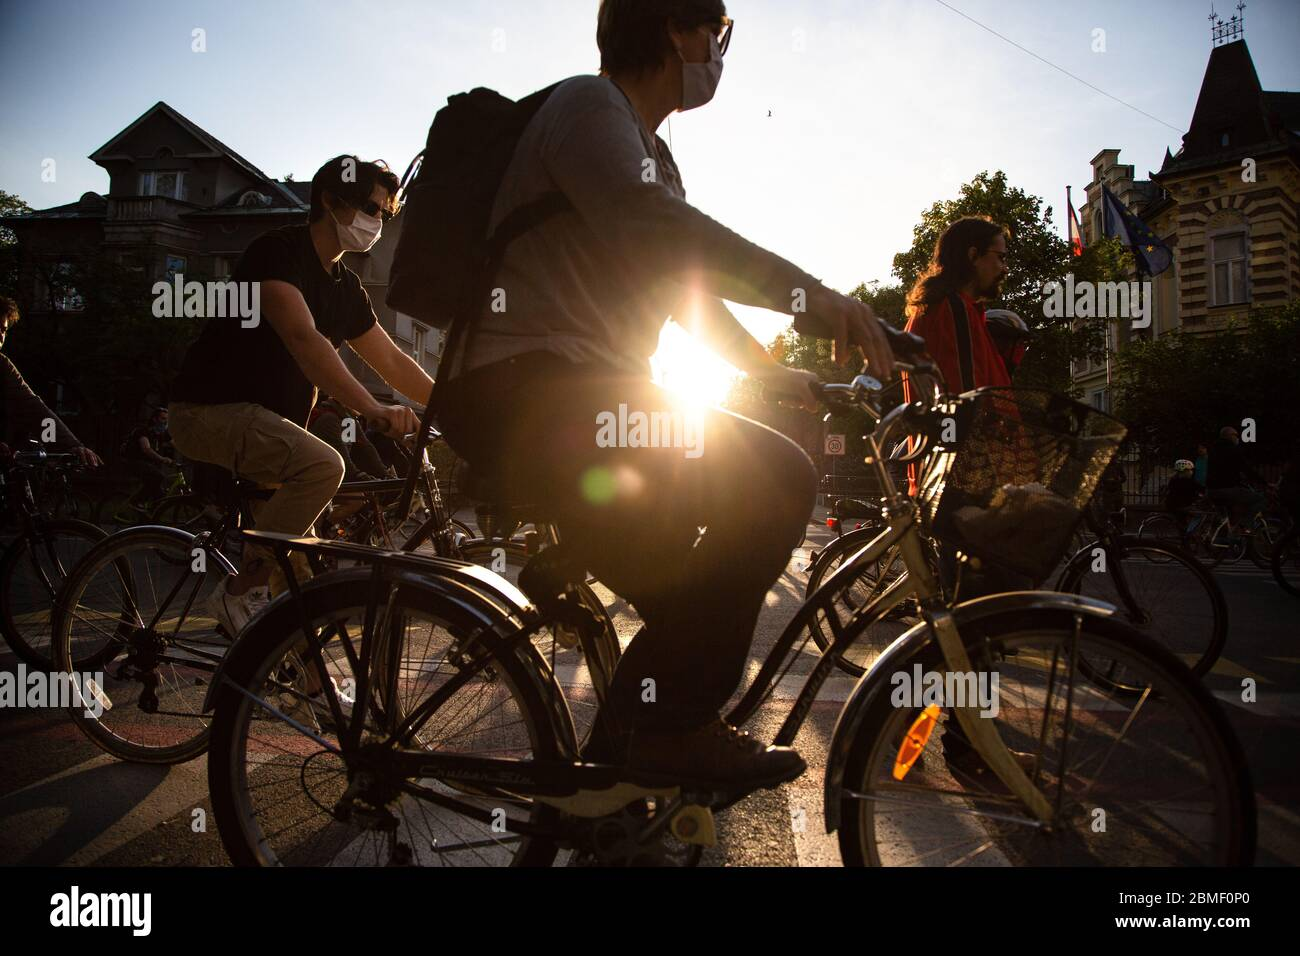 Ljubljana, Slovenia, May 8, 2020: People ride their bicycles  during an anti-government protest amid the coronavirus crisis. Following whistleblower's revelations of corruption in the government of Janez Janša and accusations of its undemocratic rule over five thousand people rode bicycles around government buildings in sign of protest. Stock Photo